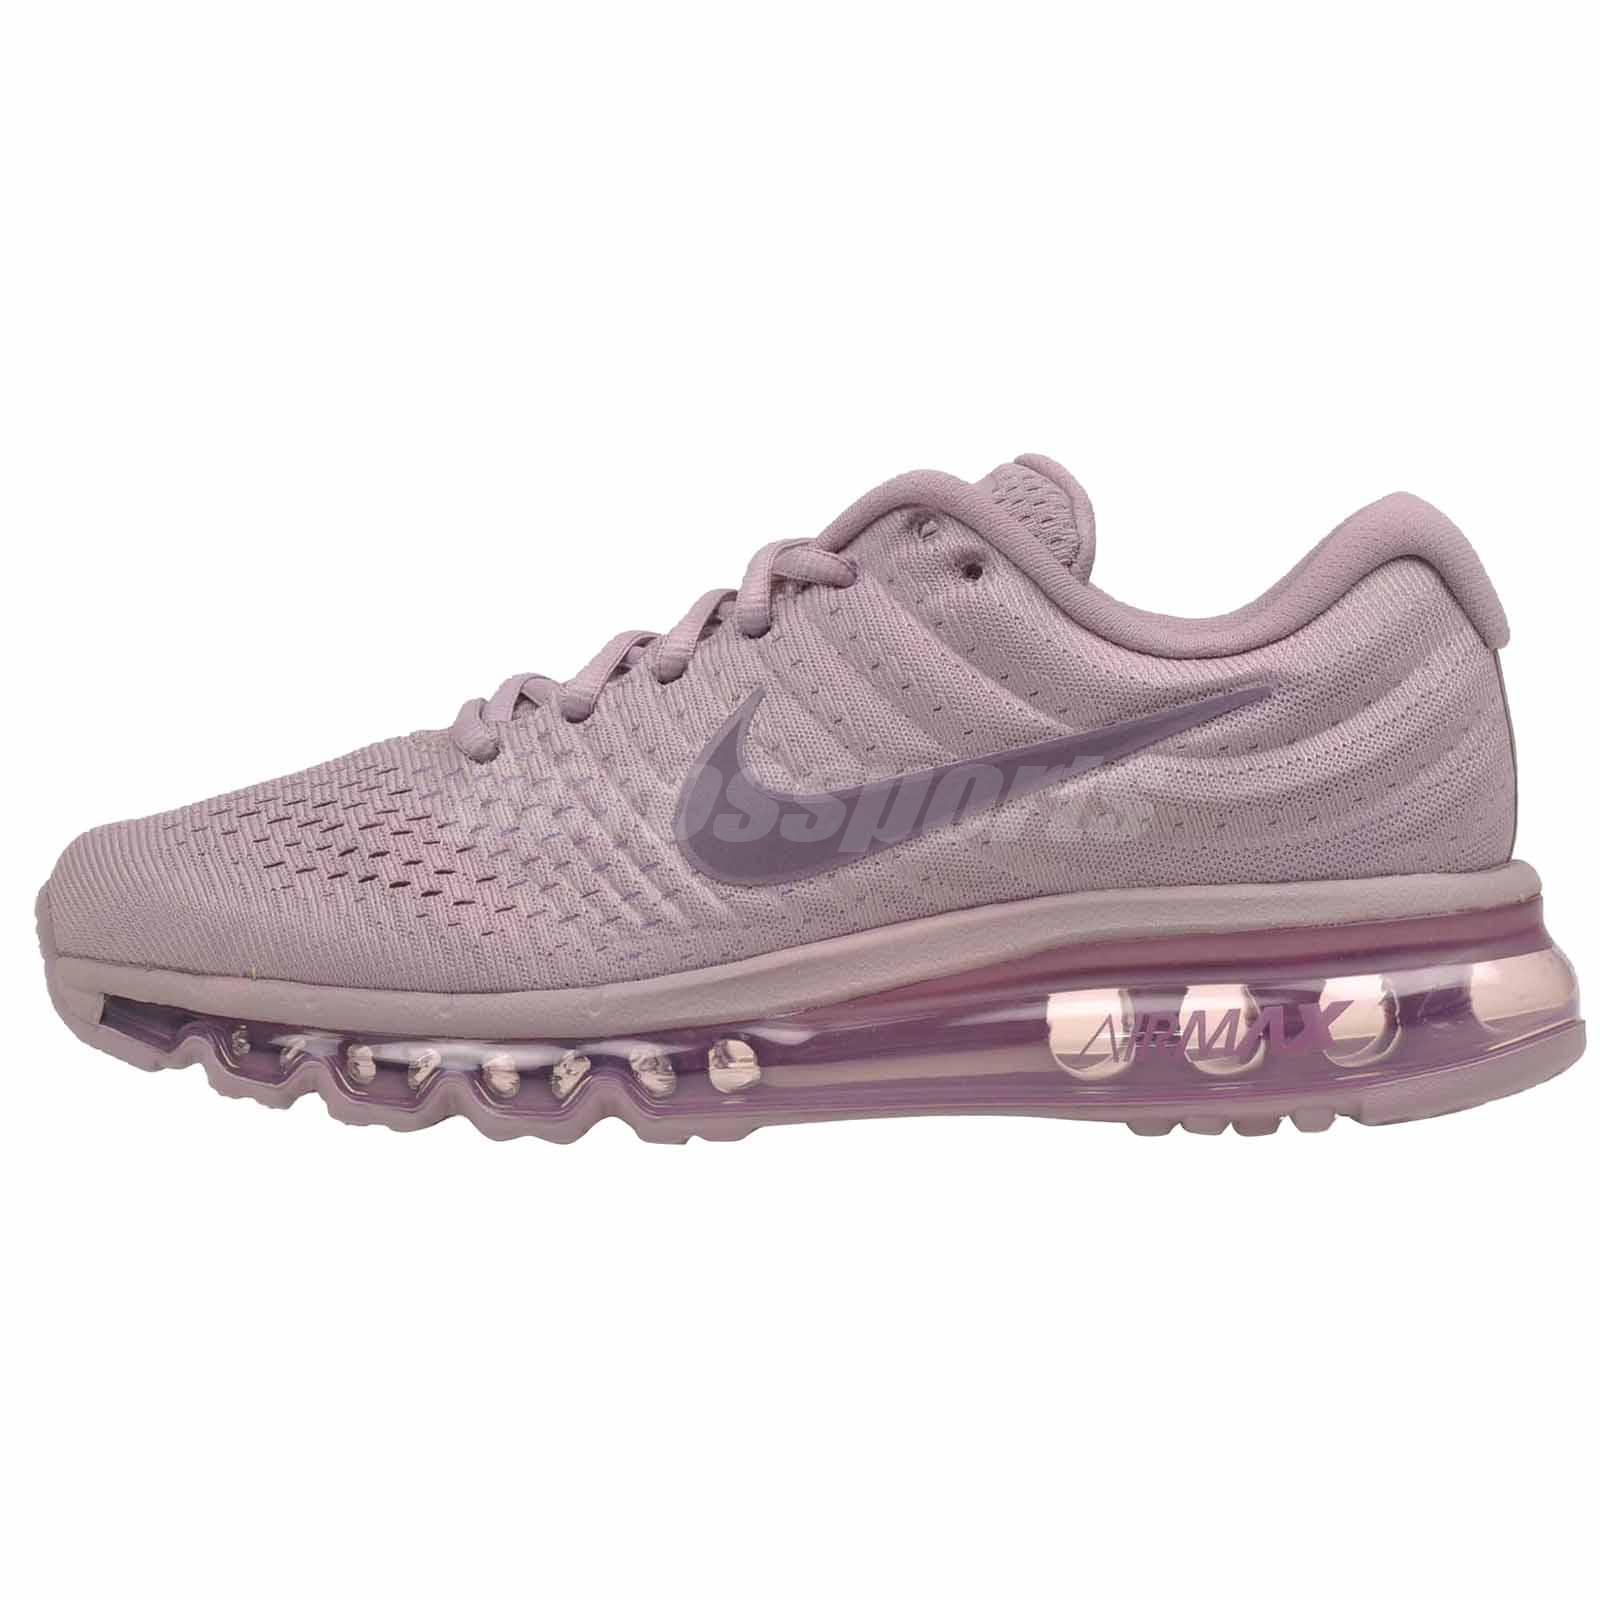 Details about Nike Wmns Air Max 2017 Running Womens Shoes Plum Fog 849560 503